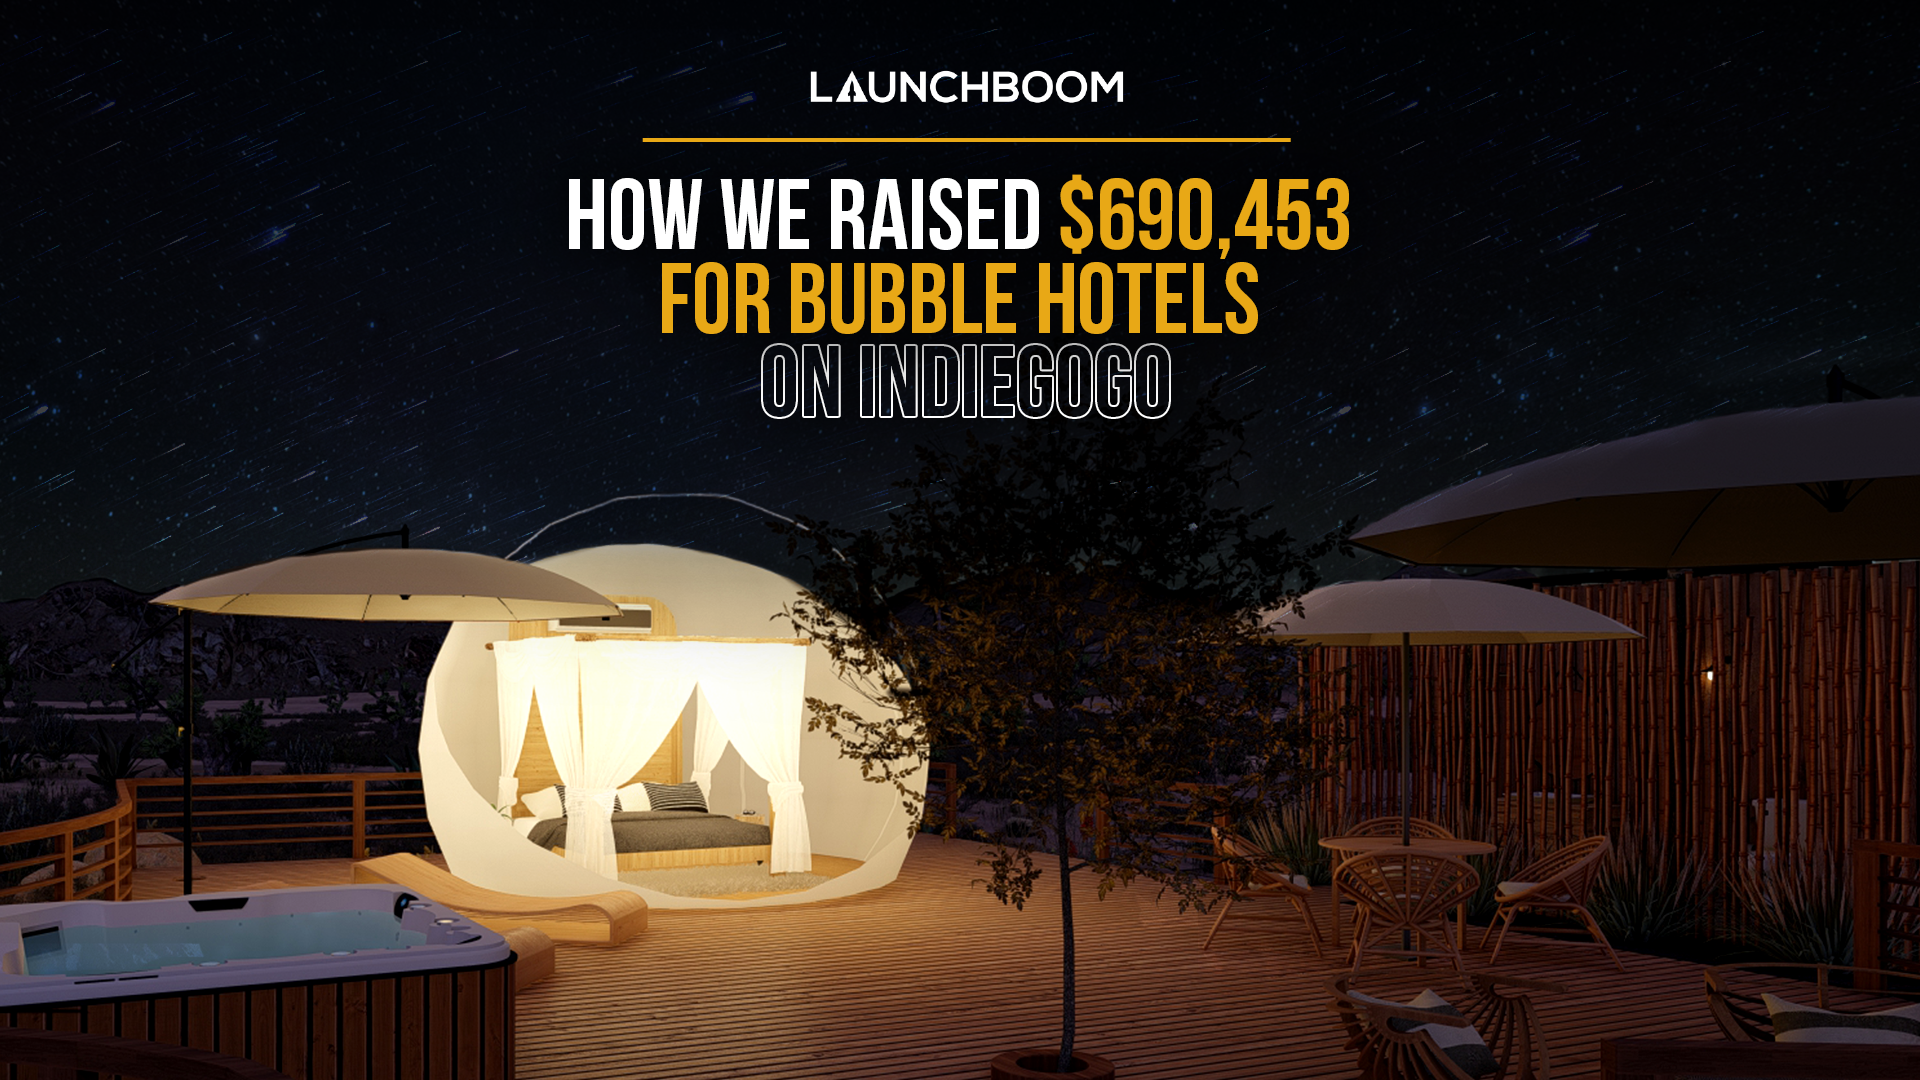 How we raised $690,453 for Bubble Hotels on Indiegogo [CASE STUDY]